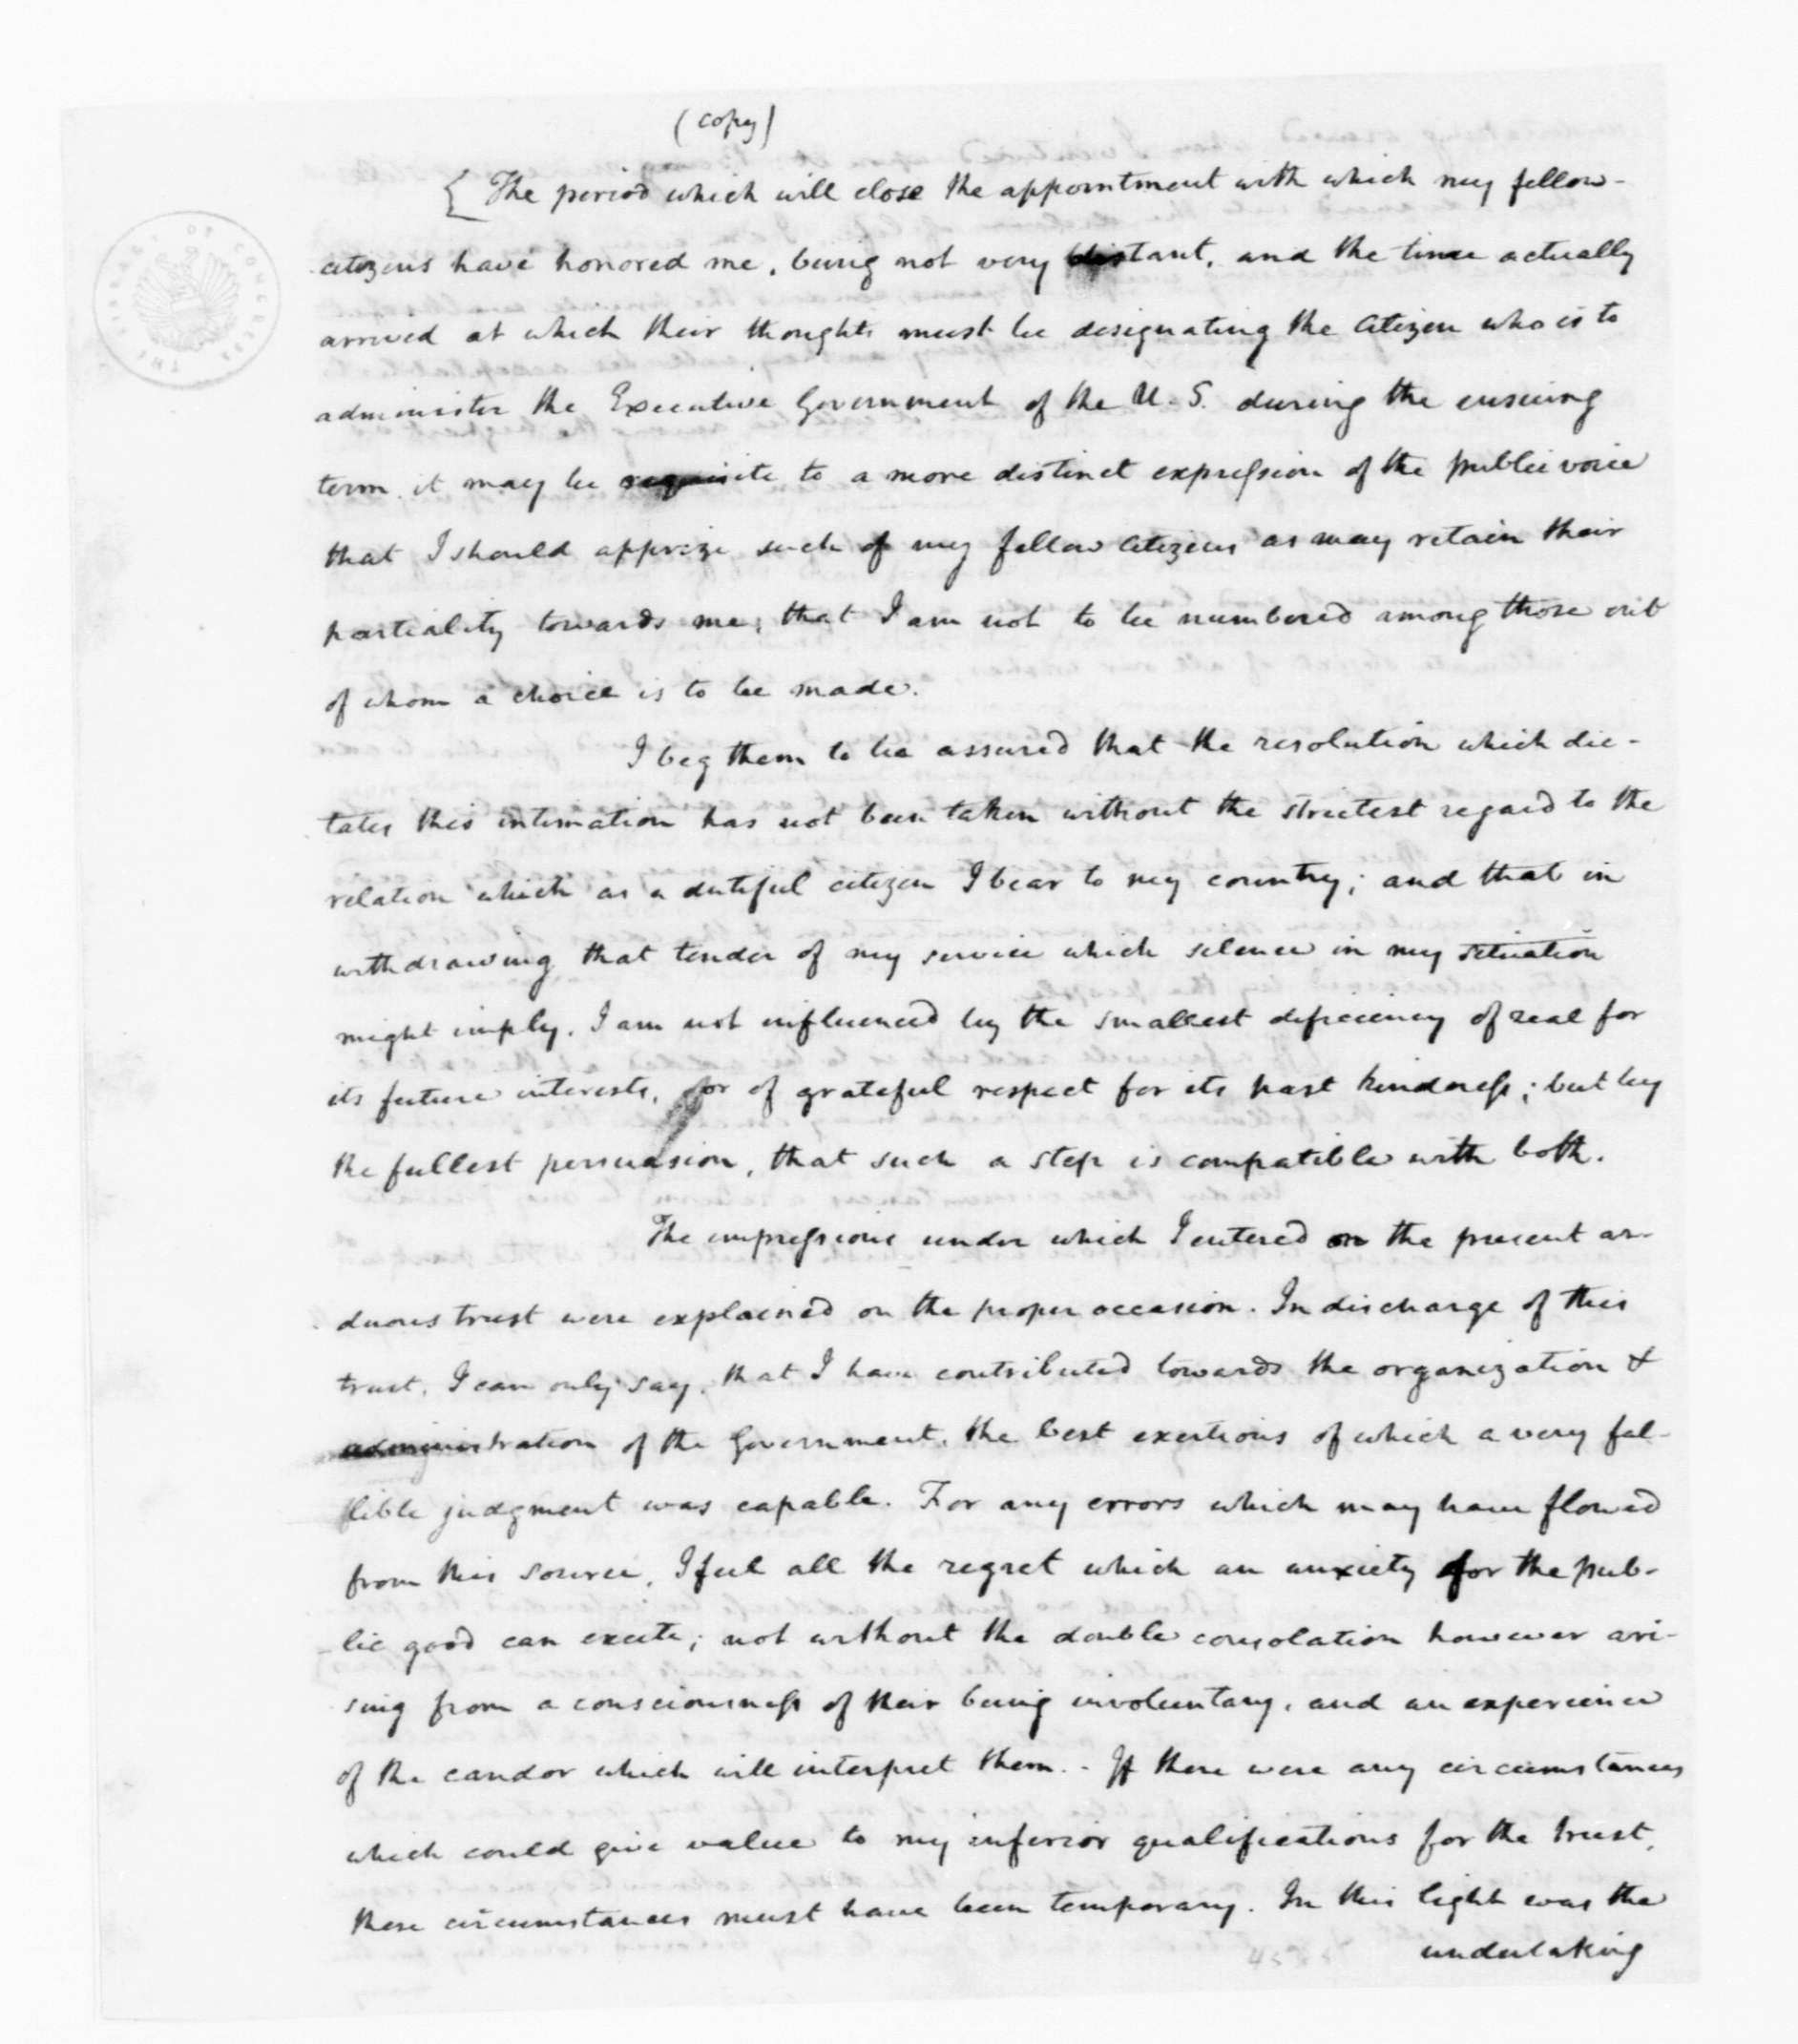 Manuscript: James Madison to George Washington, June 21, 1792. Draft of Address, Washington's Farewell.